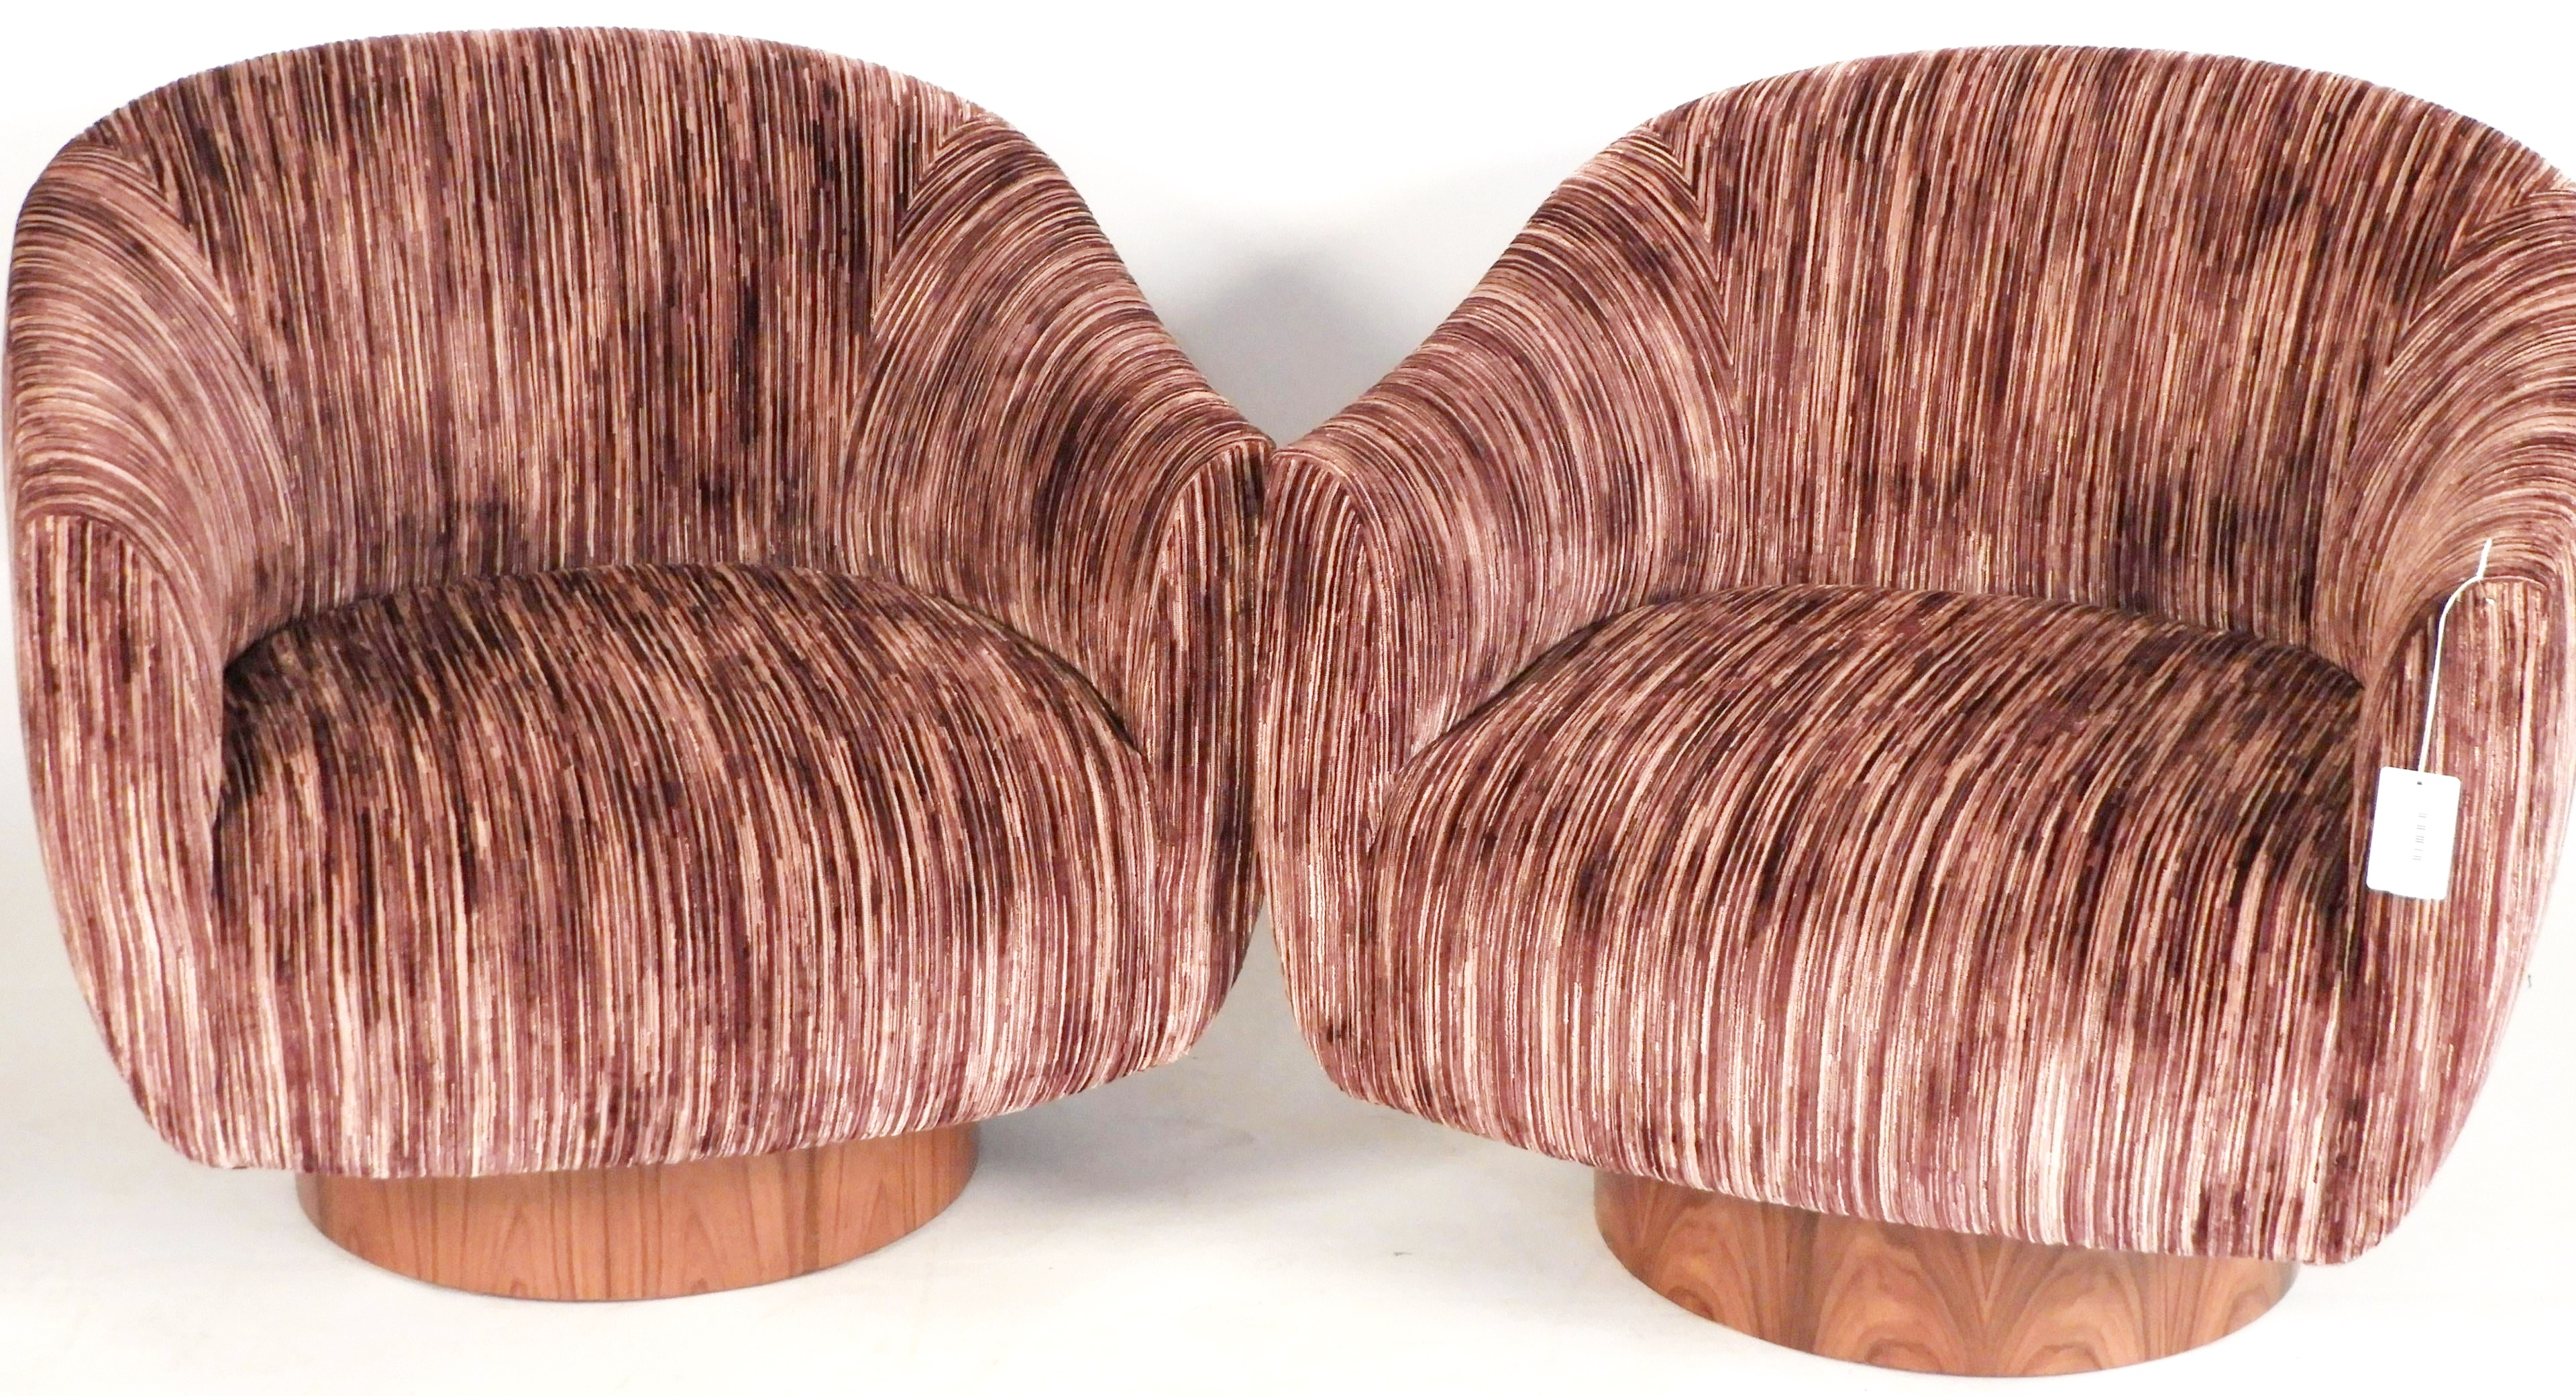 1047. Pair Kelly Wearstler For EJ Victor Sonara Chair21